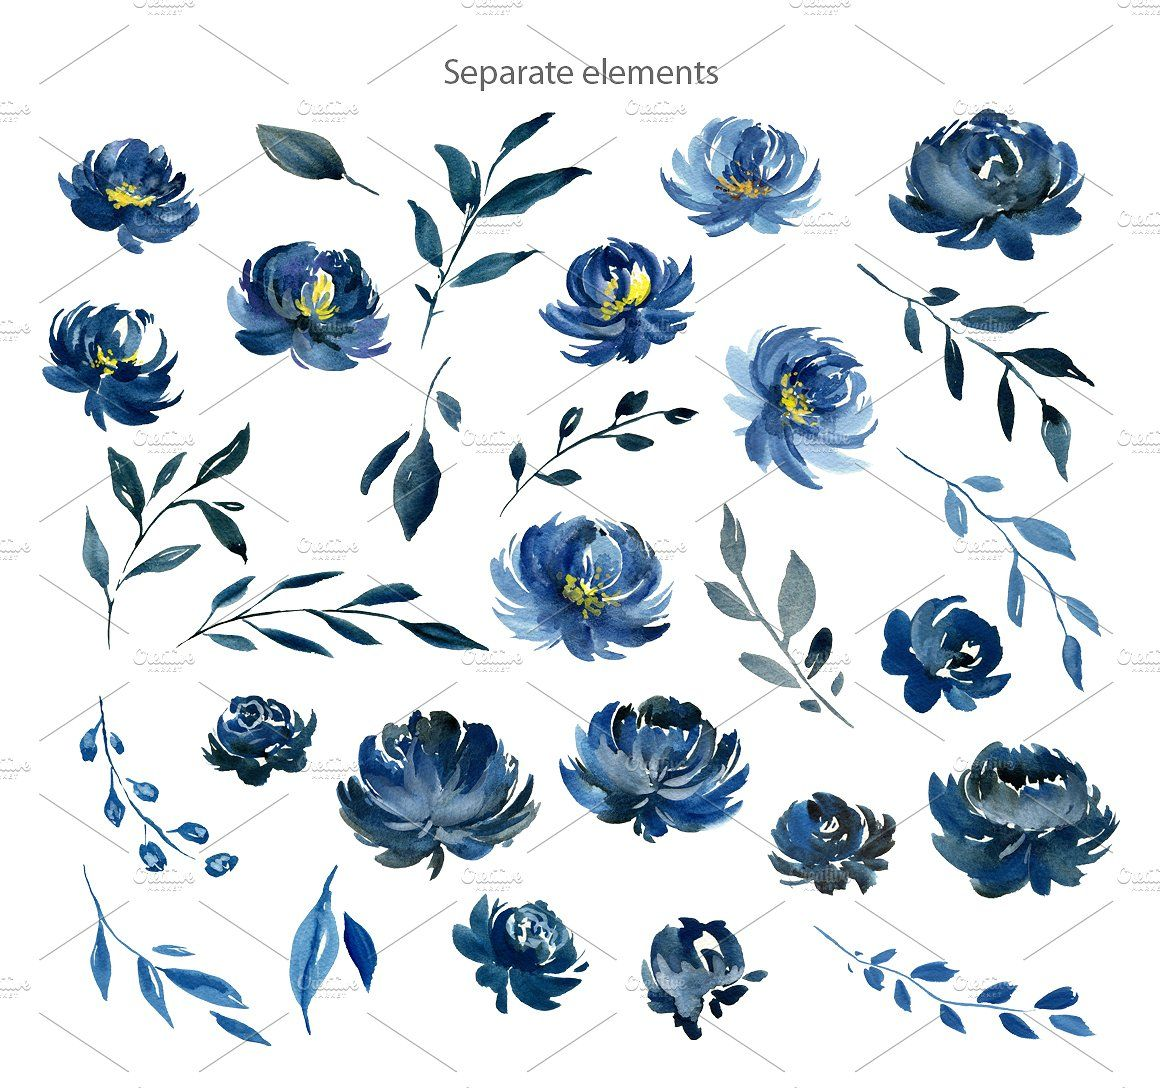 Navy Blue Watercolor Peonies Flowers Watercolor Peonies Floral